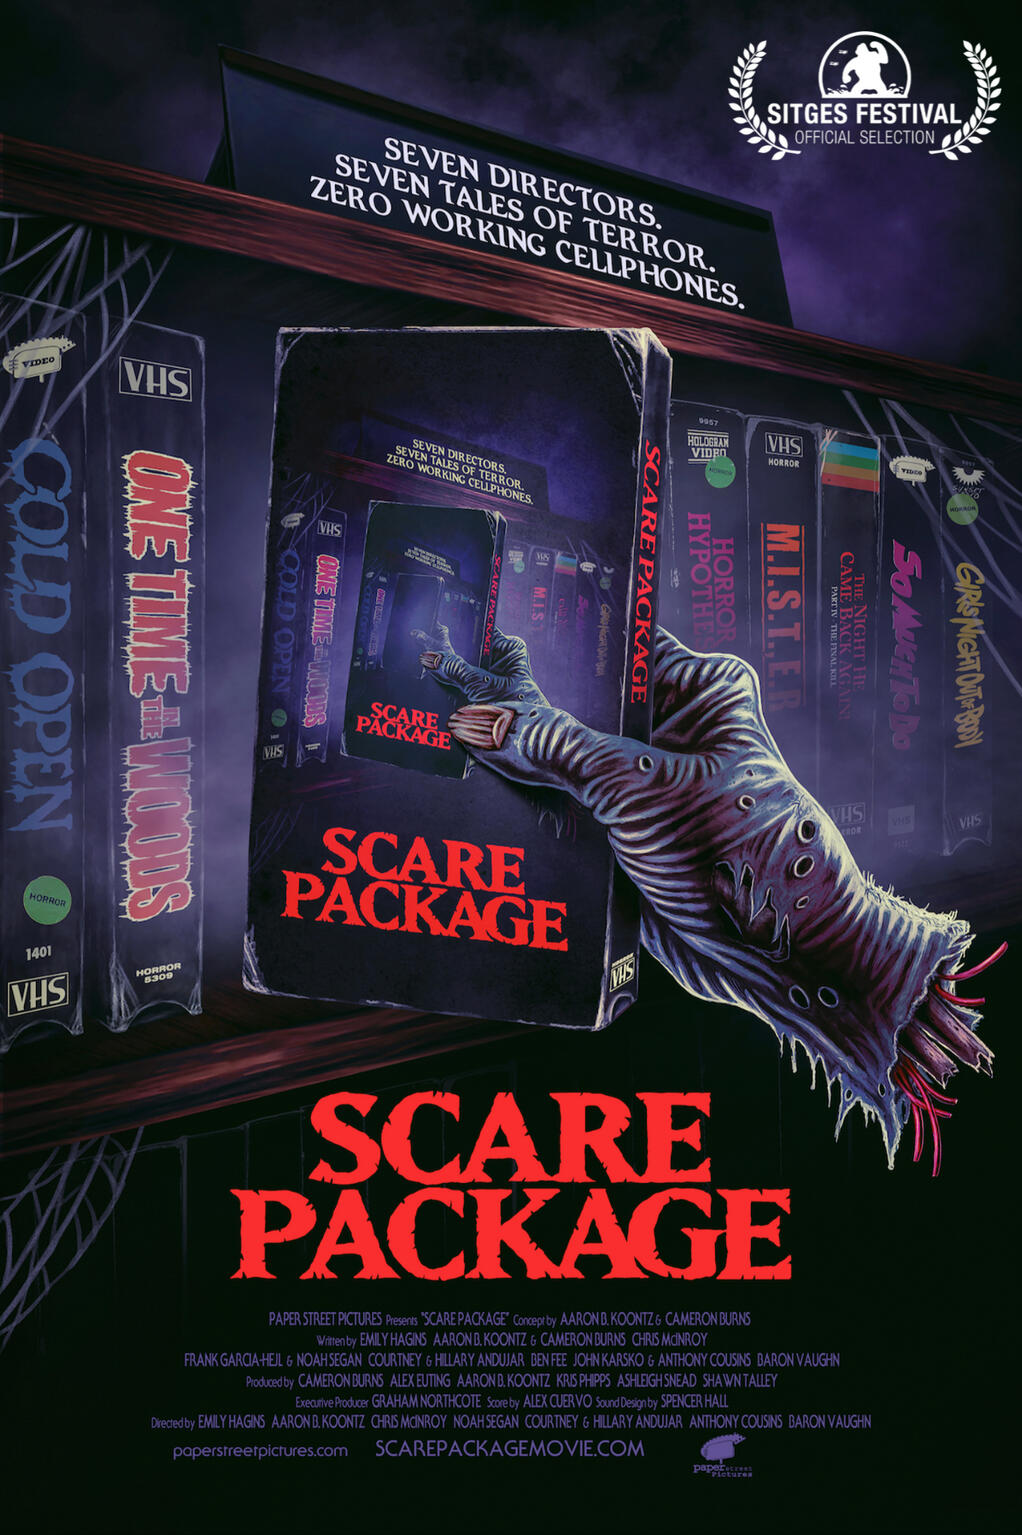 Scare Package review: Anthology of horror